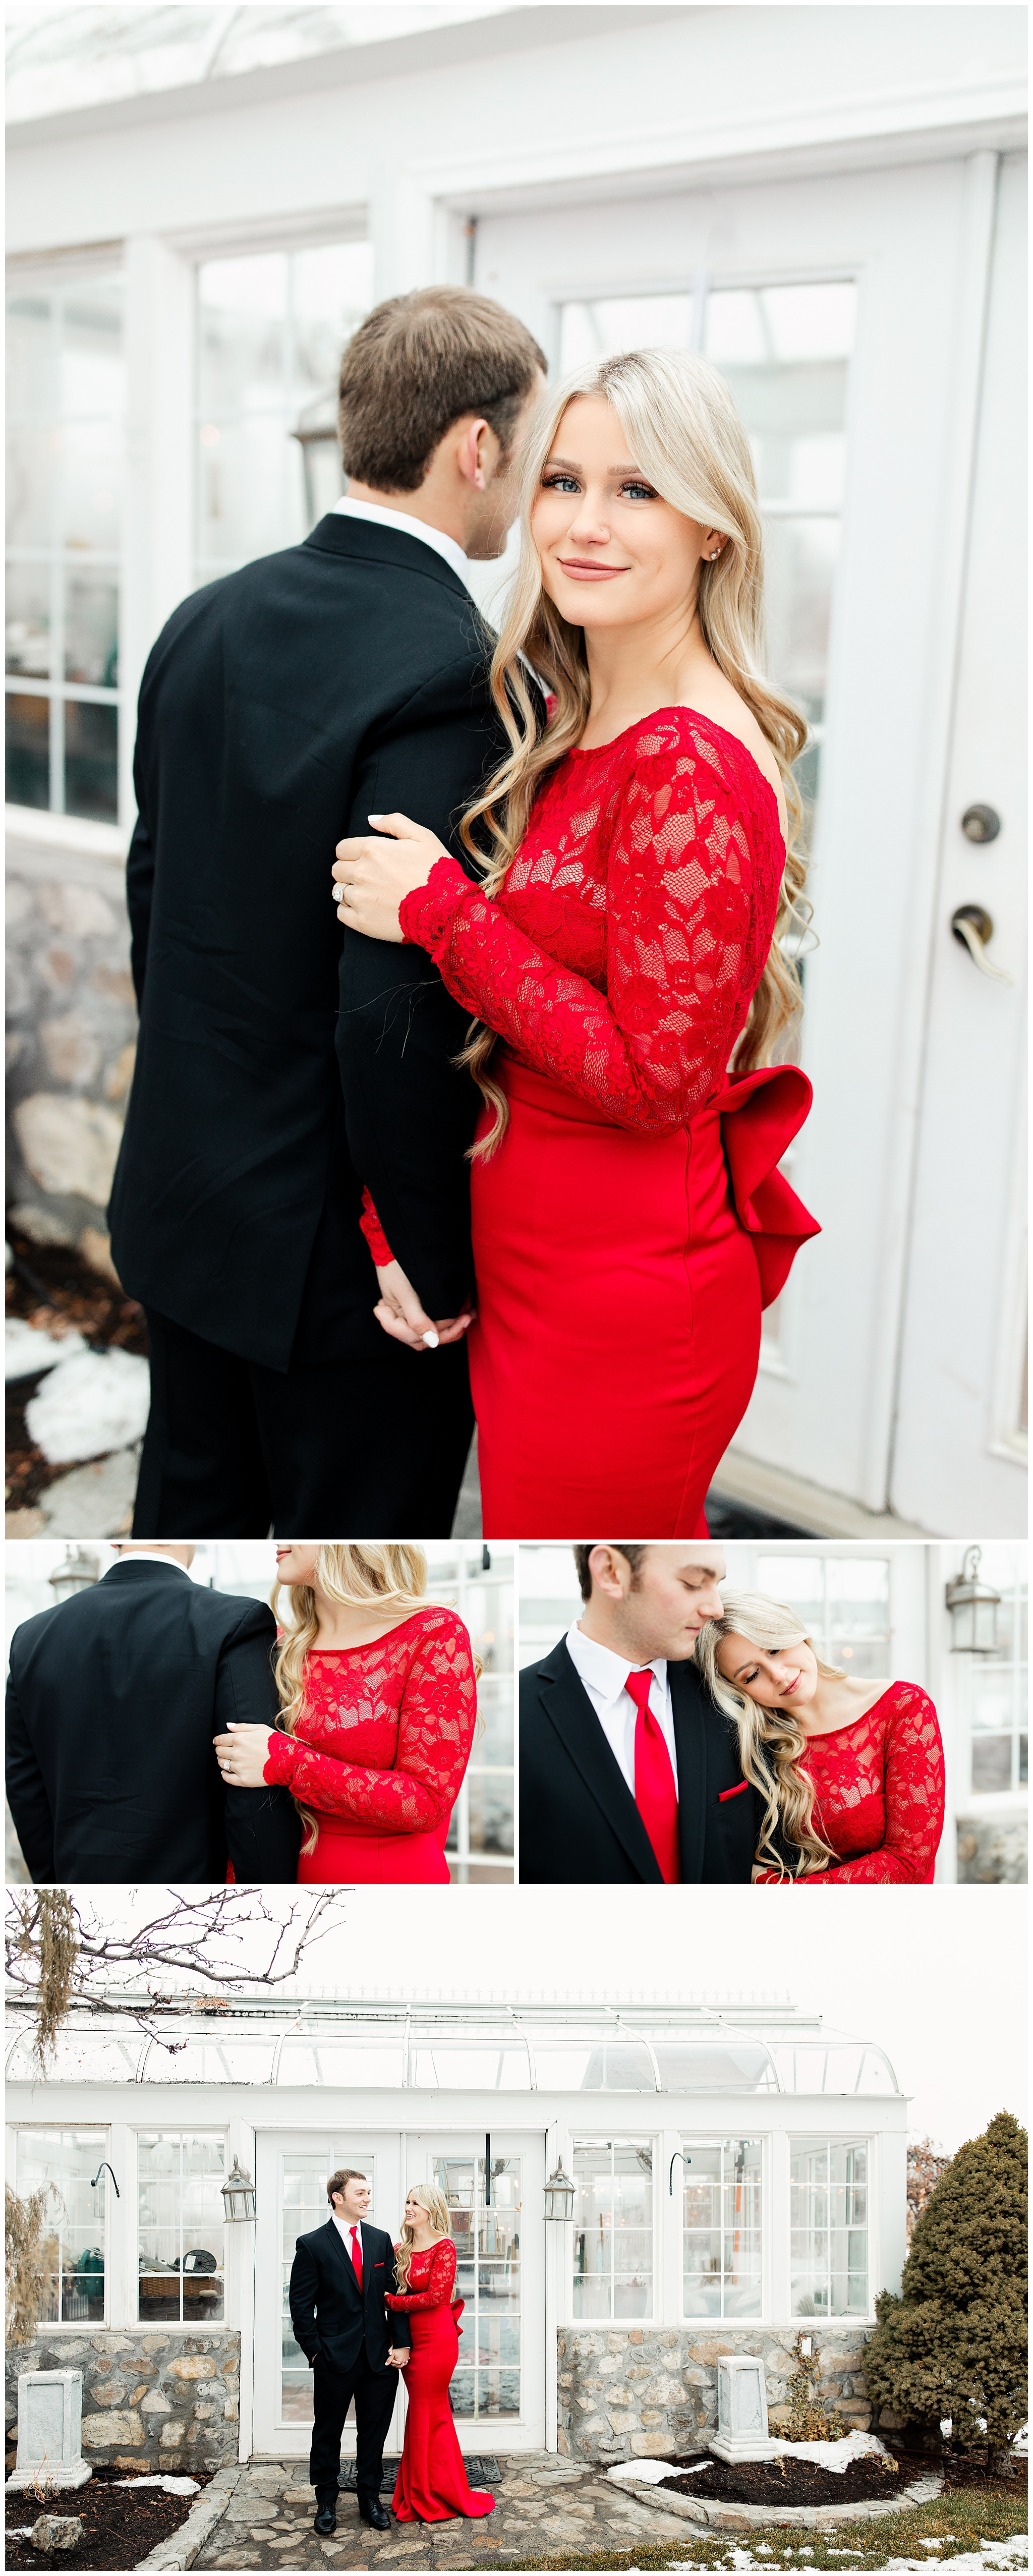 Red dress, Formal engagements, What to wear at an engagement session, Formal red dress, Utah engagement session, Wadley farms wedding